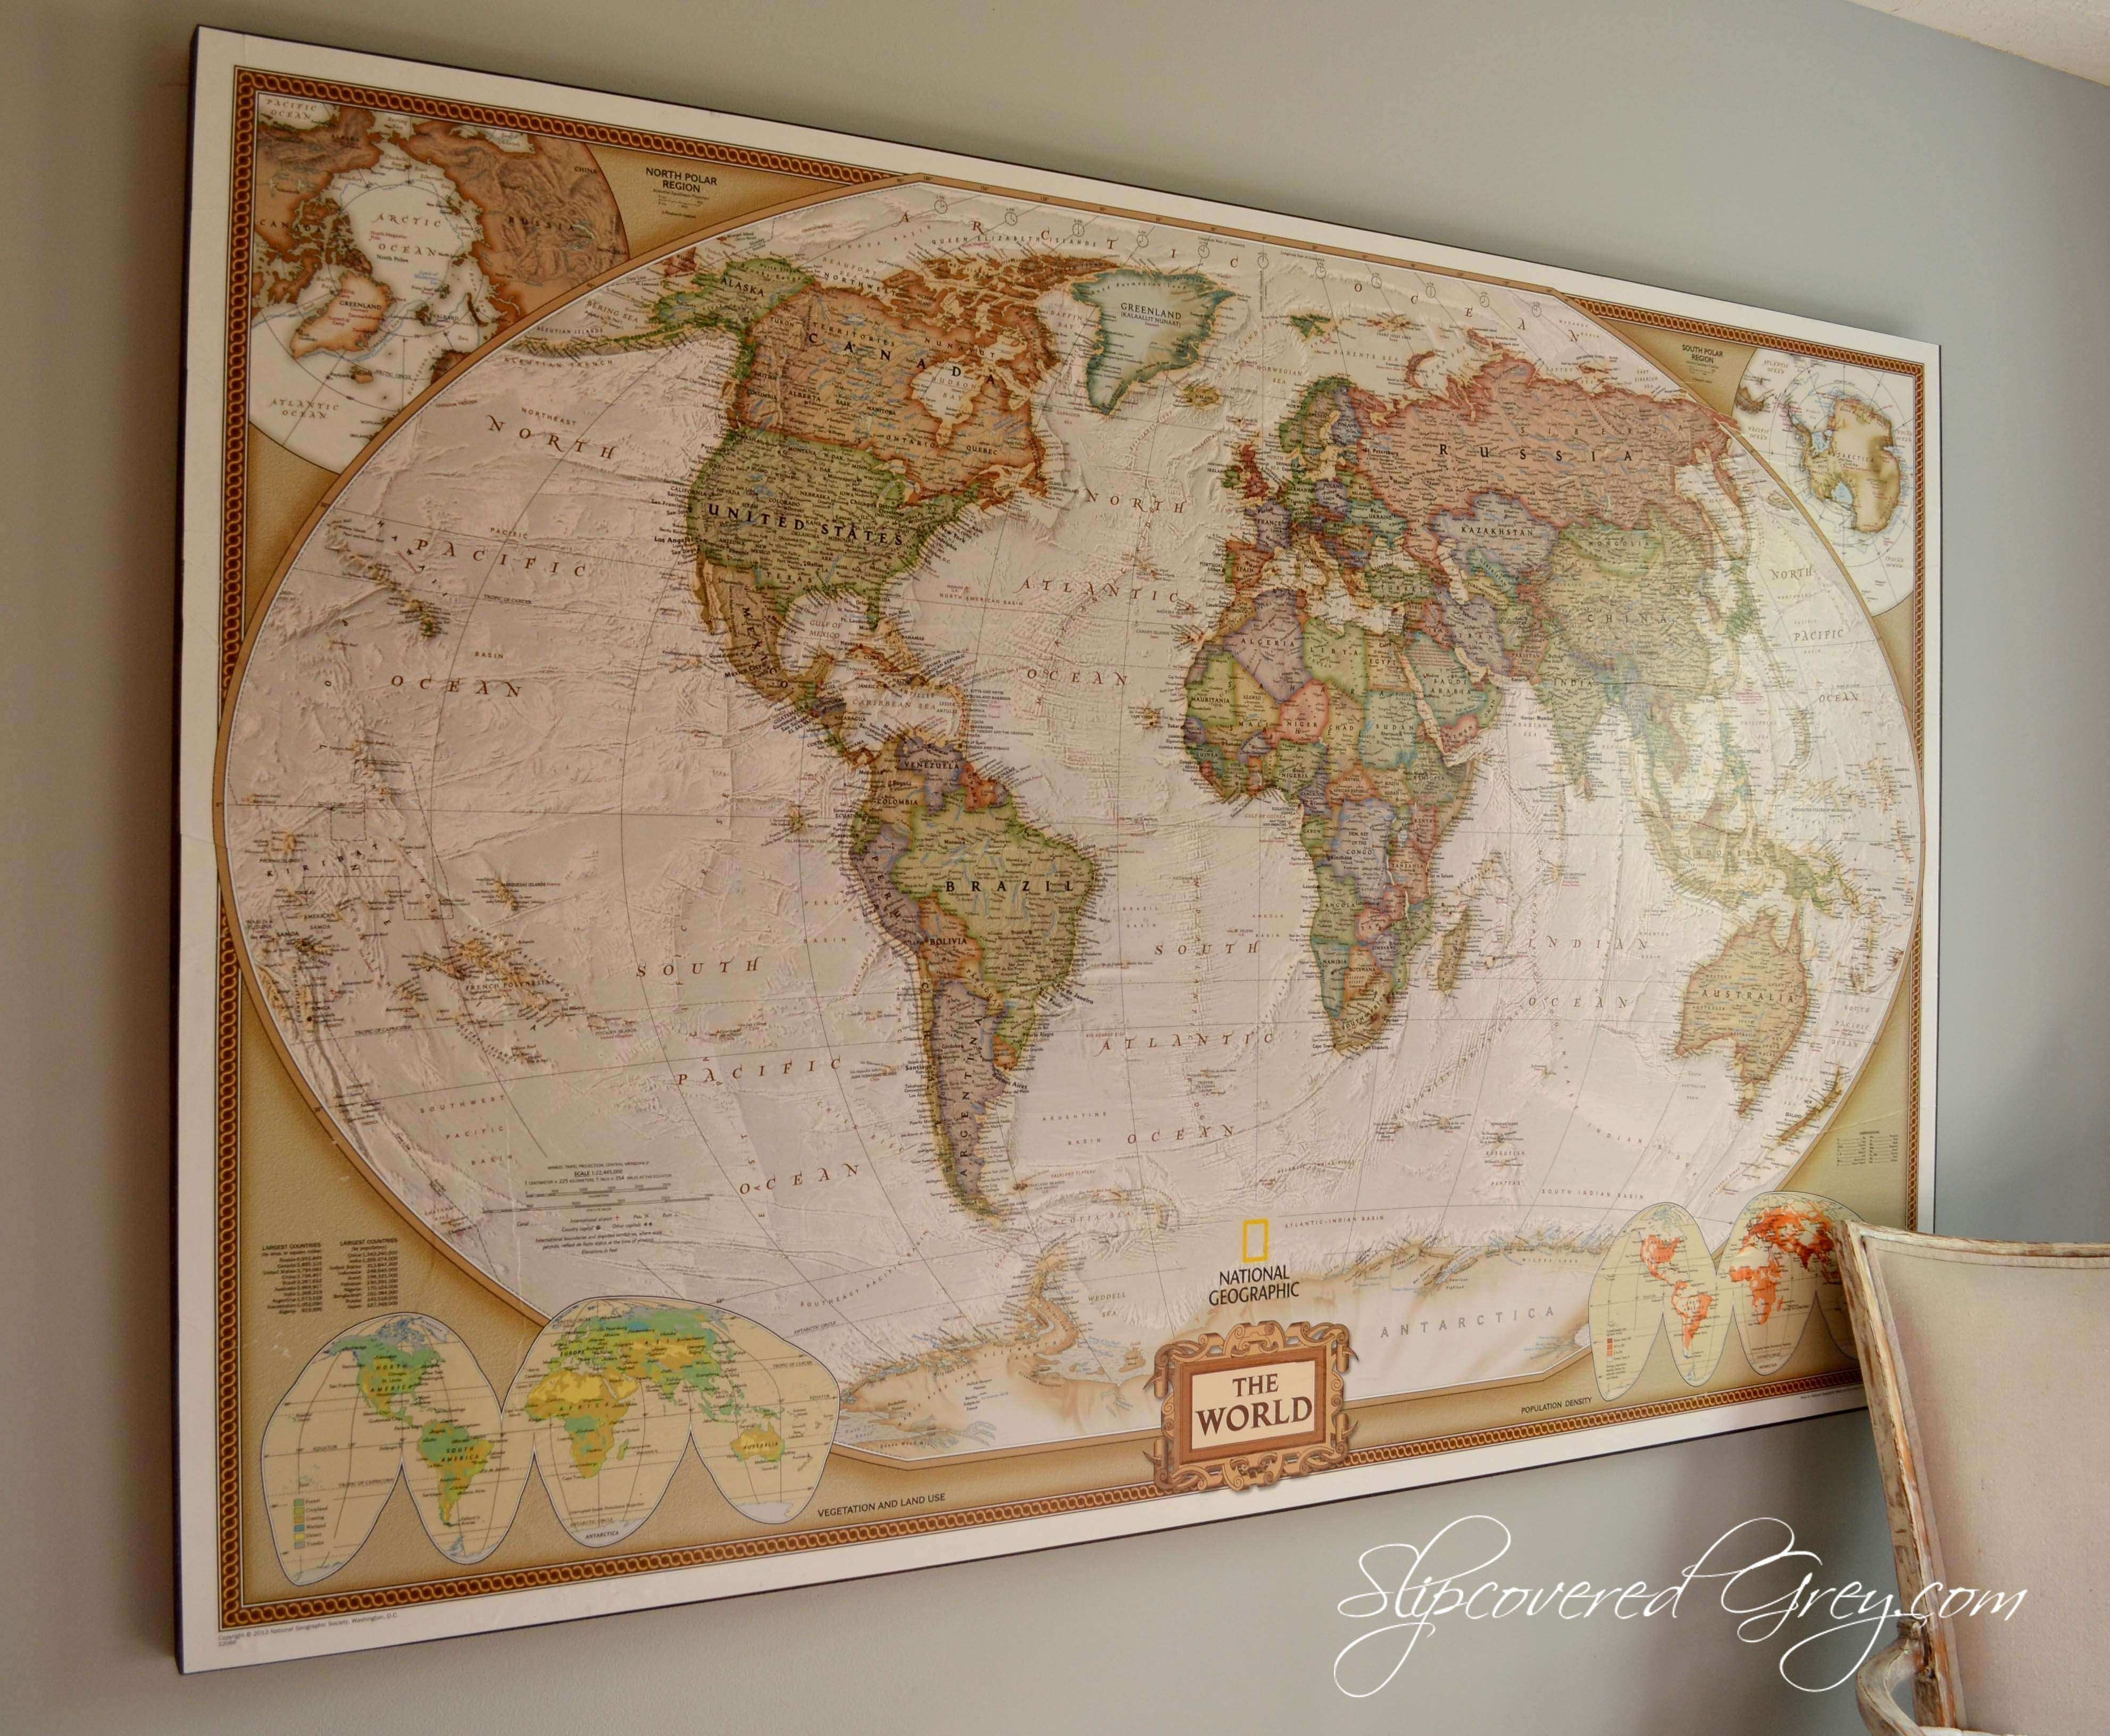 Us Map Wall Art New United States Wall Map Framed | Wall Art Ideas within Us Map Wall Art (Image 14 of 20)